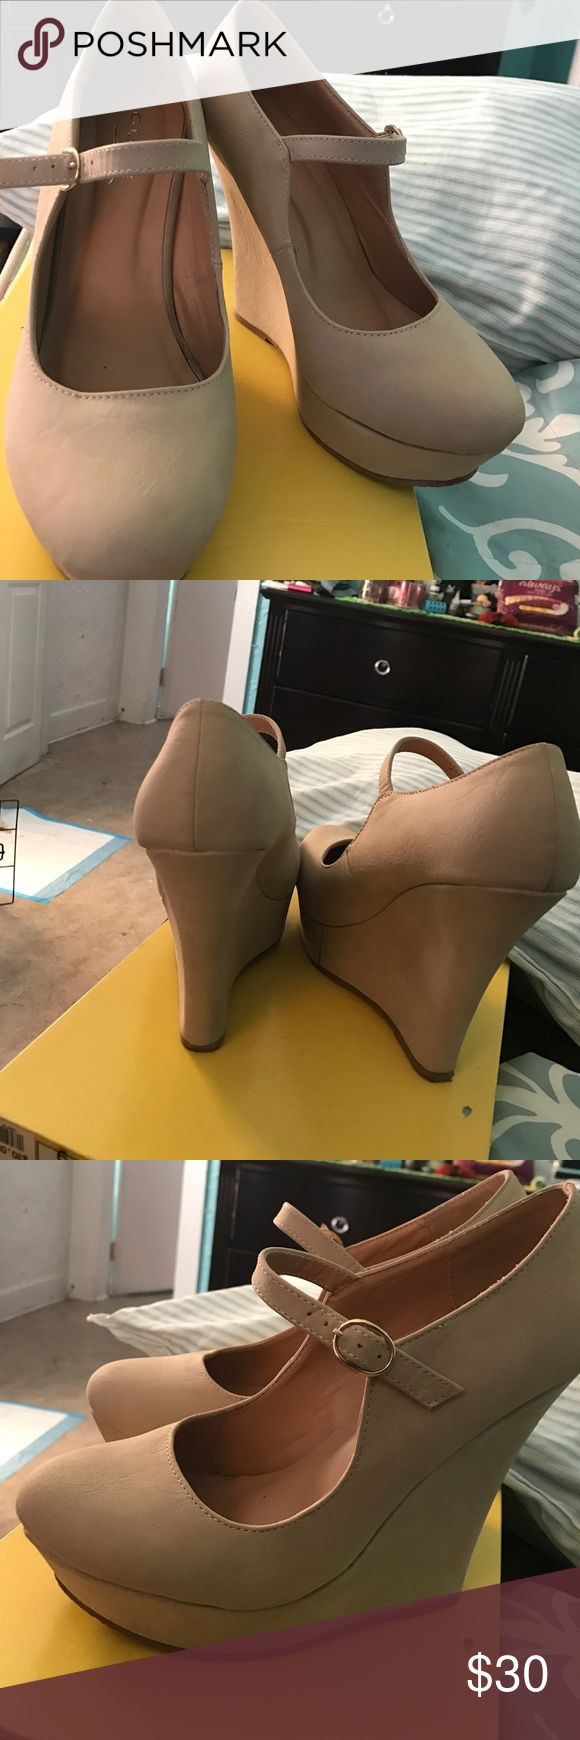 Wedges High Heels Comfortable Usually cost more reasonable price Charlotte Russe Shoes Heels